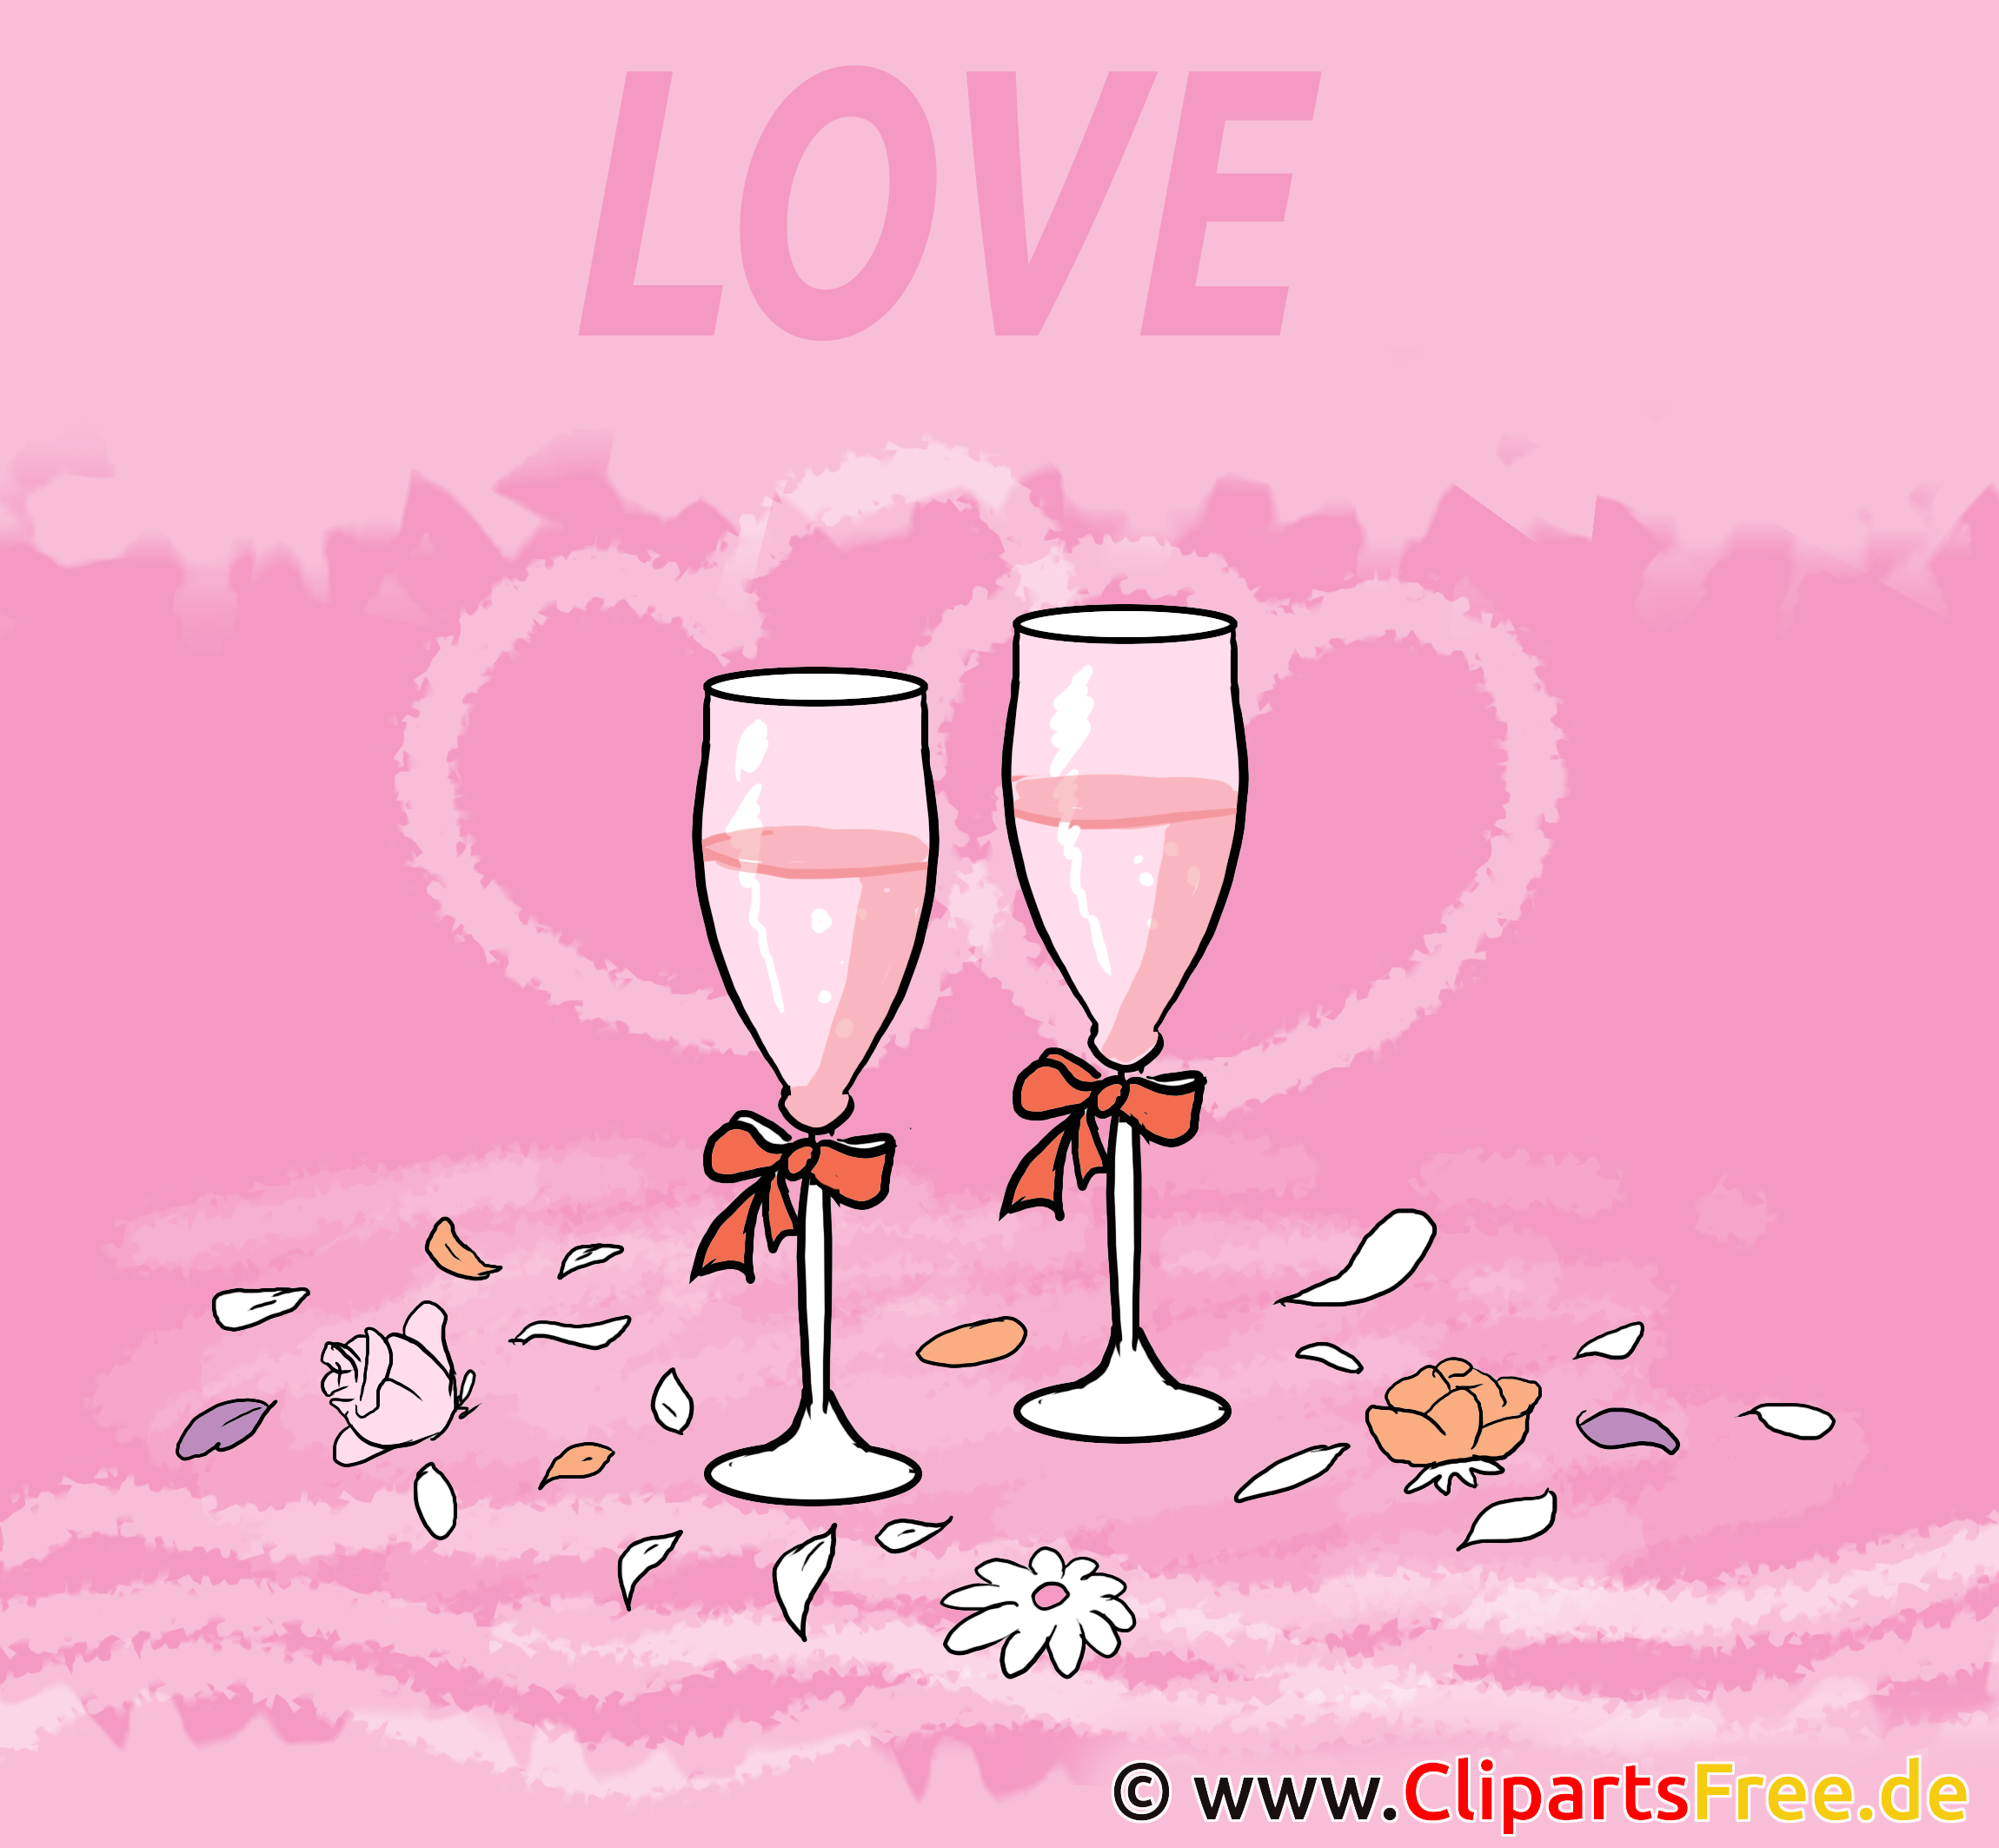 Wedding Card Wishes online for free